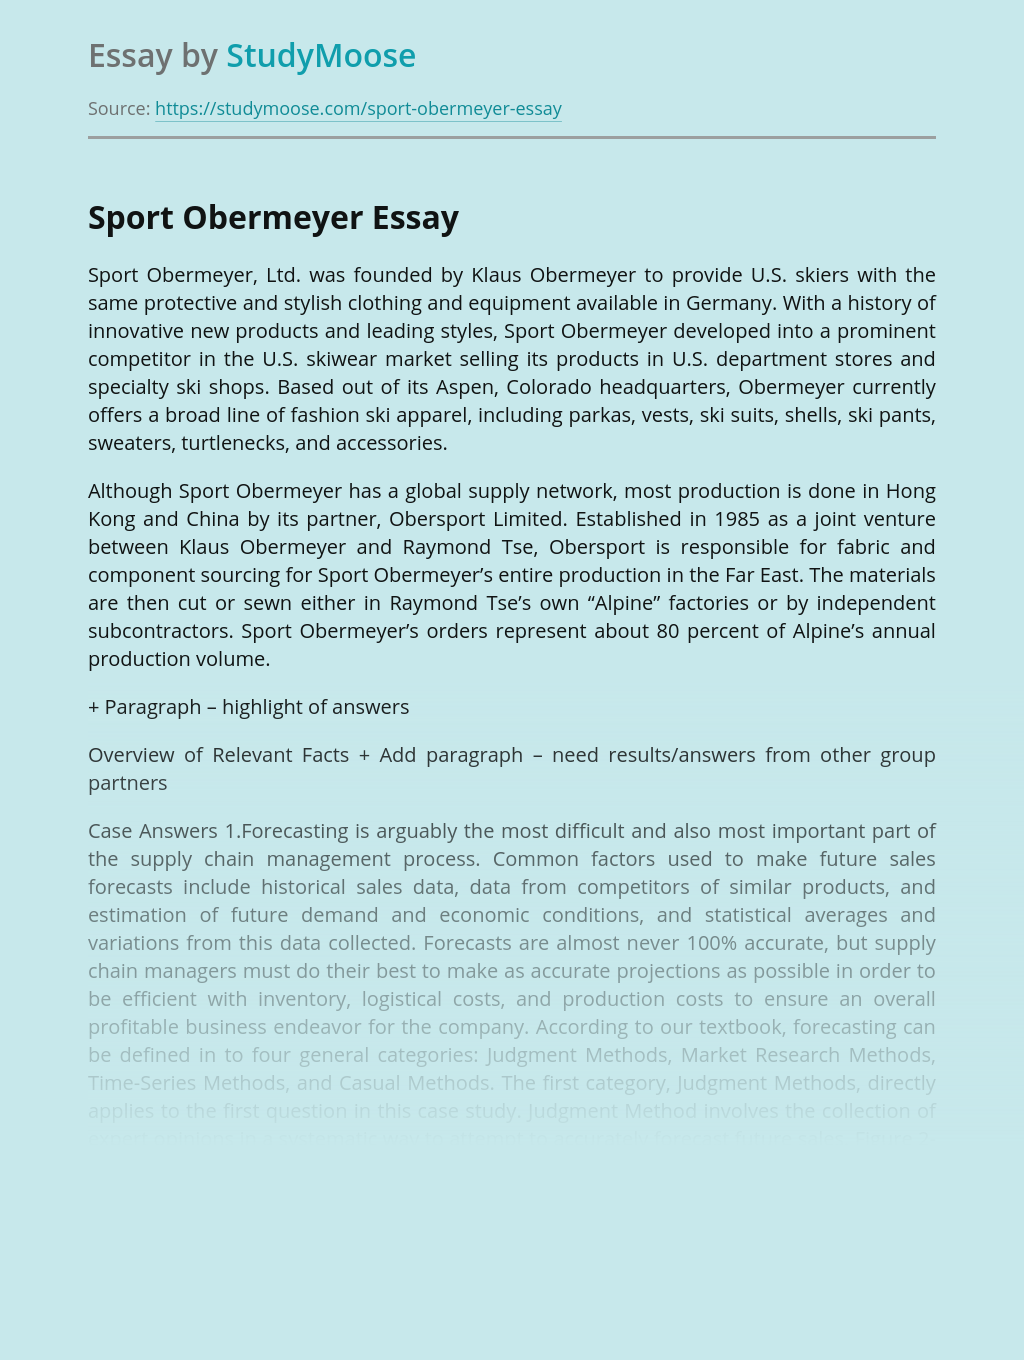 Productivity And Economic Growth of Sport Obermeyer